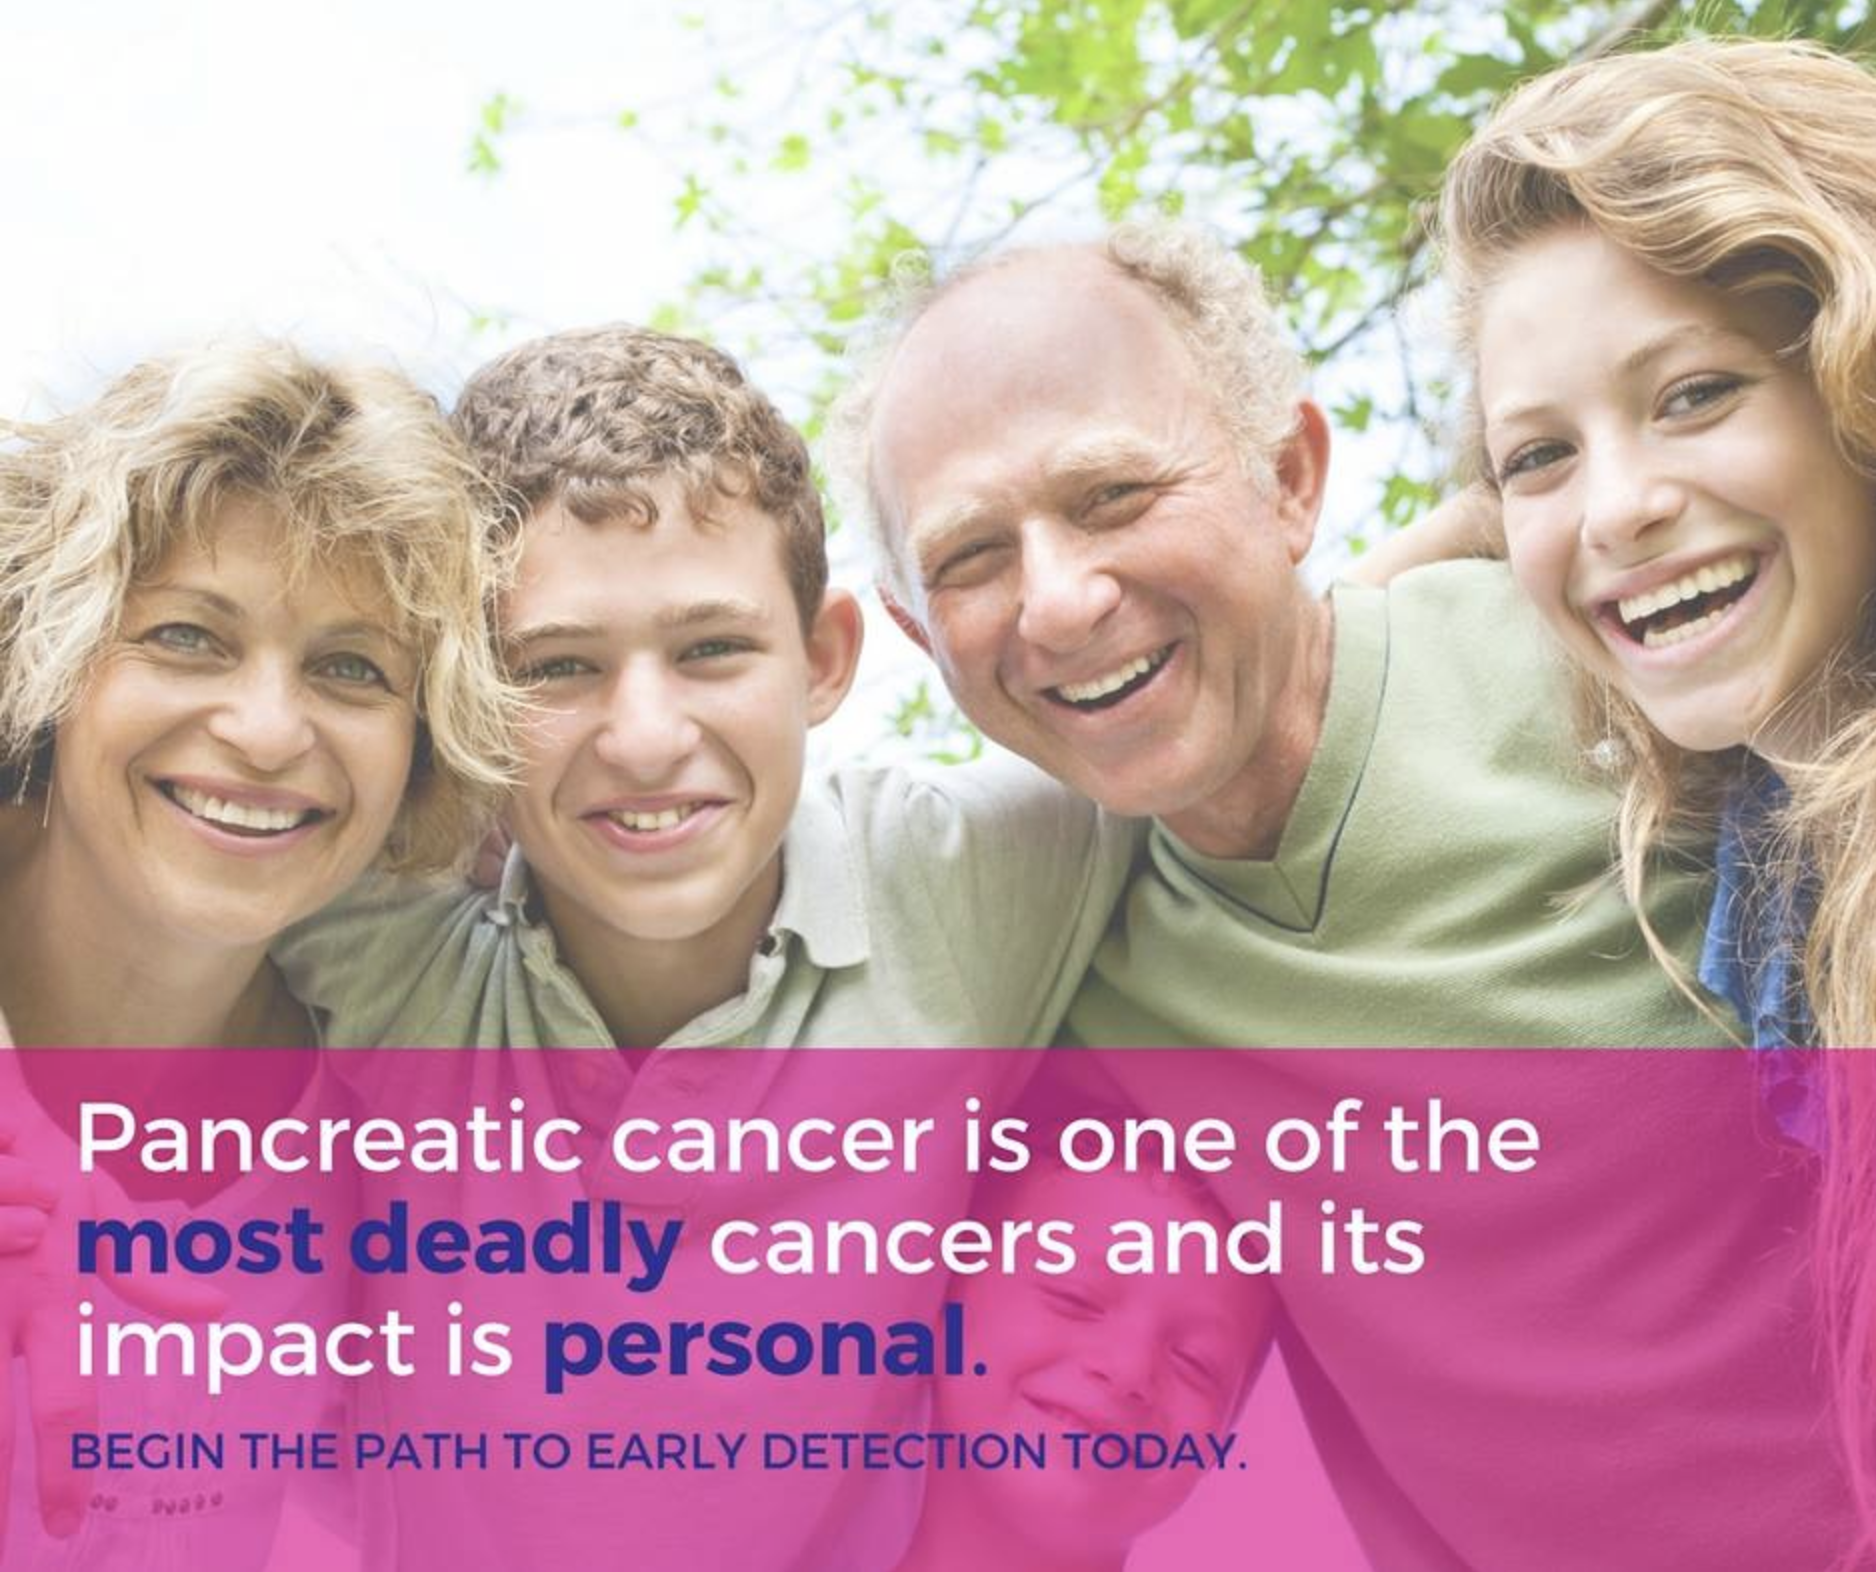 Pancreatic cancer is one of the most deadly cancers and its impact is personal. Begin the path to early detection today!